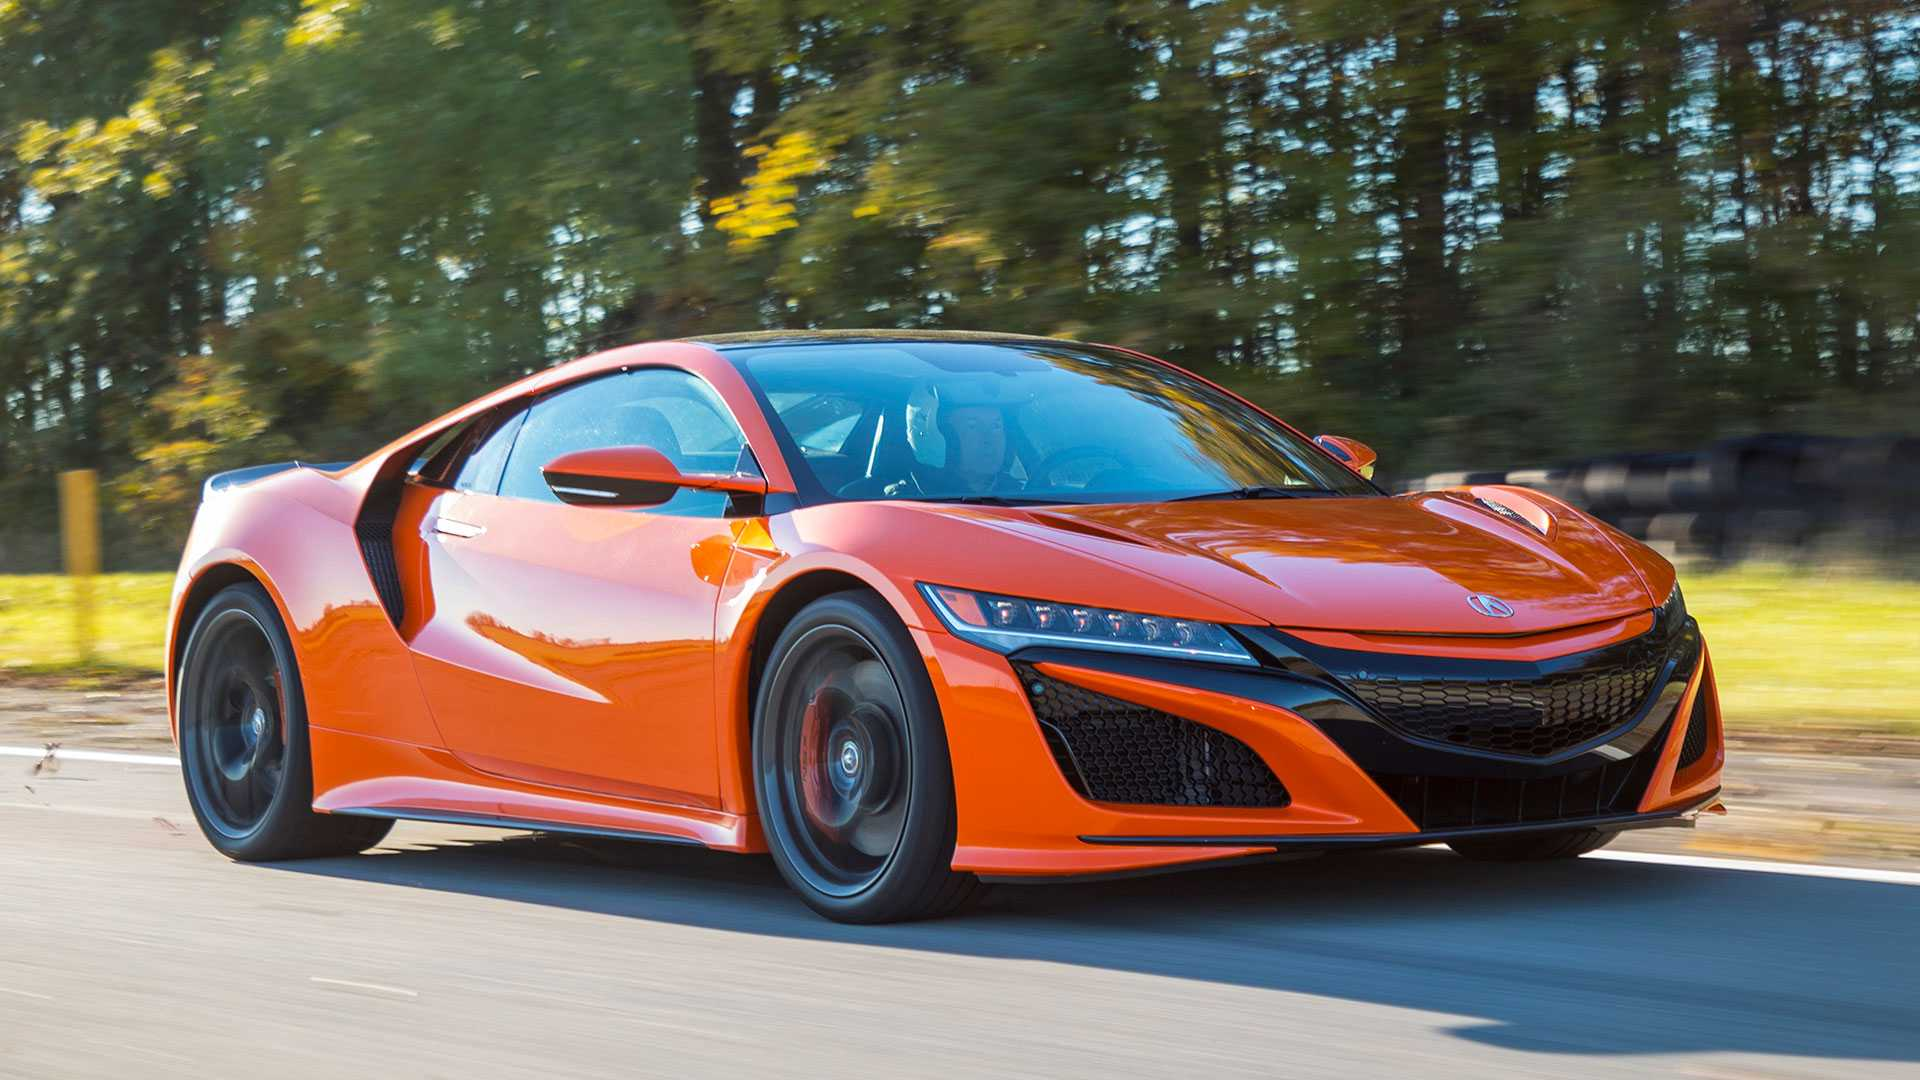 23 Great 2019 Honda Acura Price and Review for 2019 Honda Acura